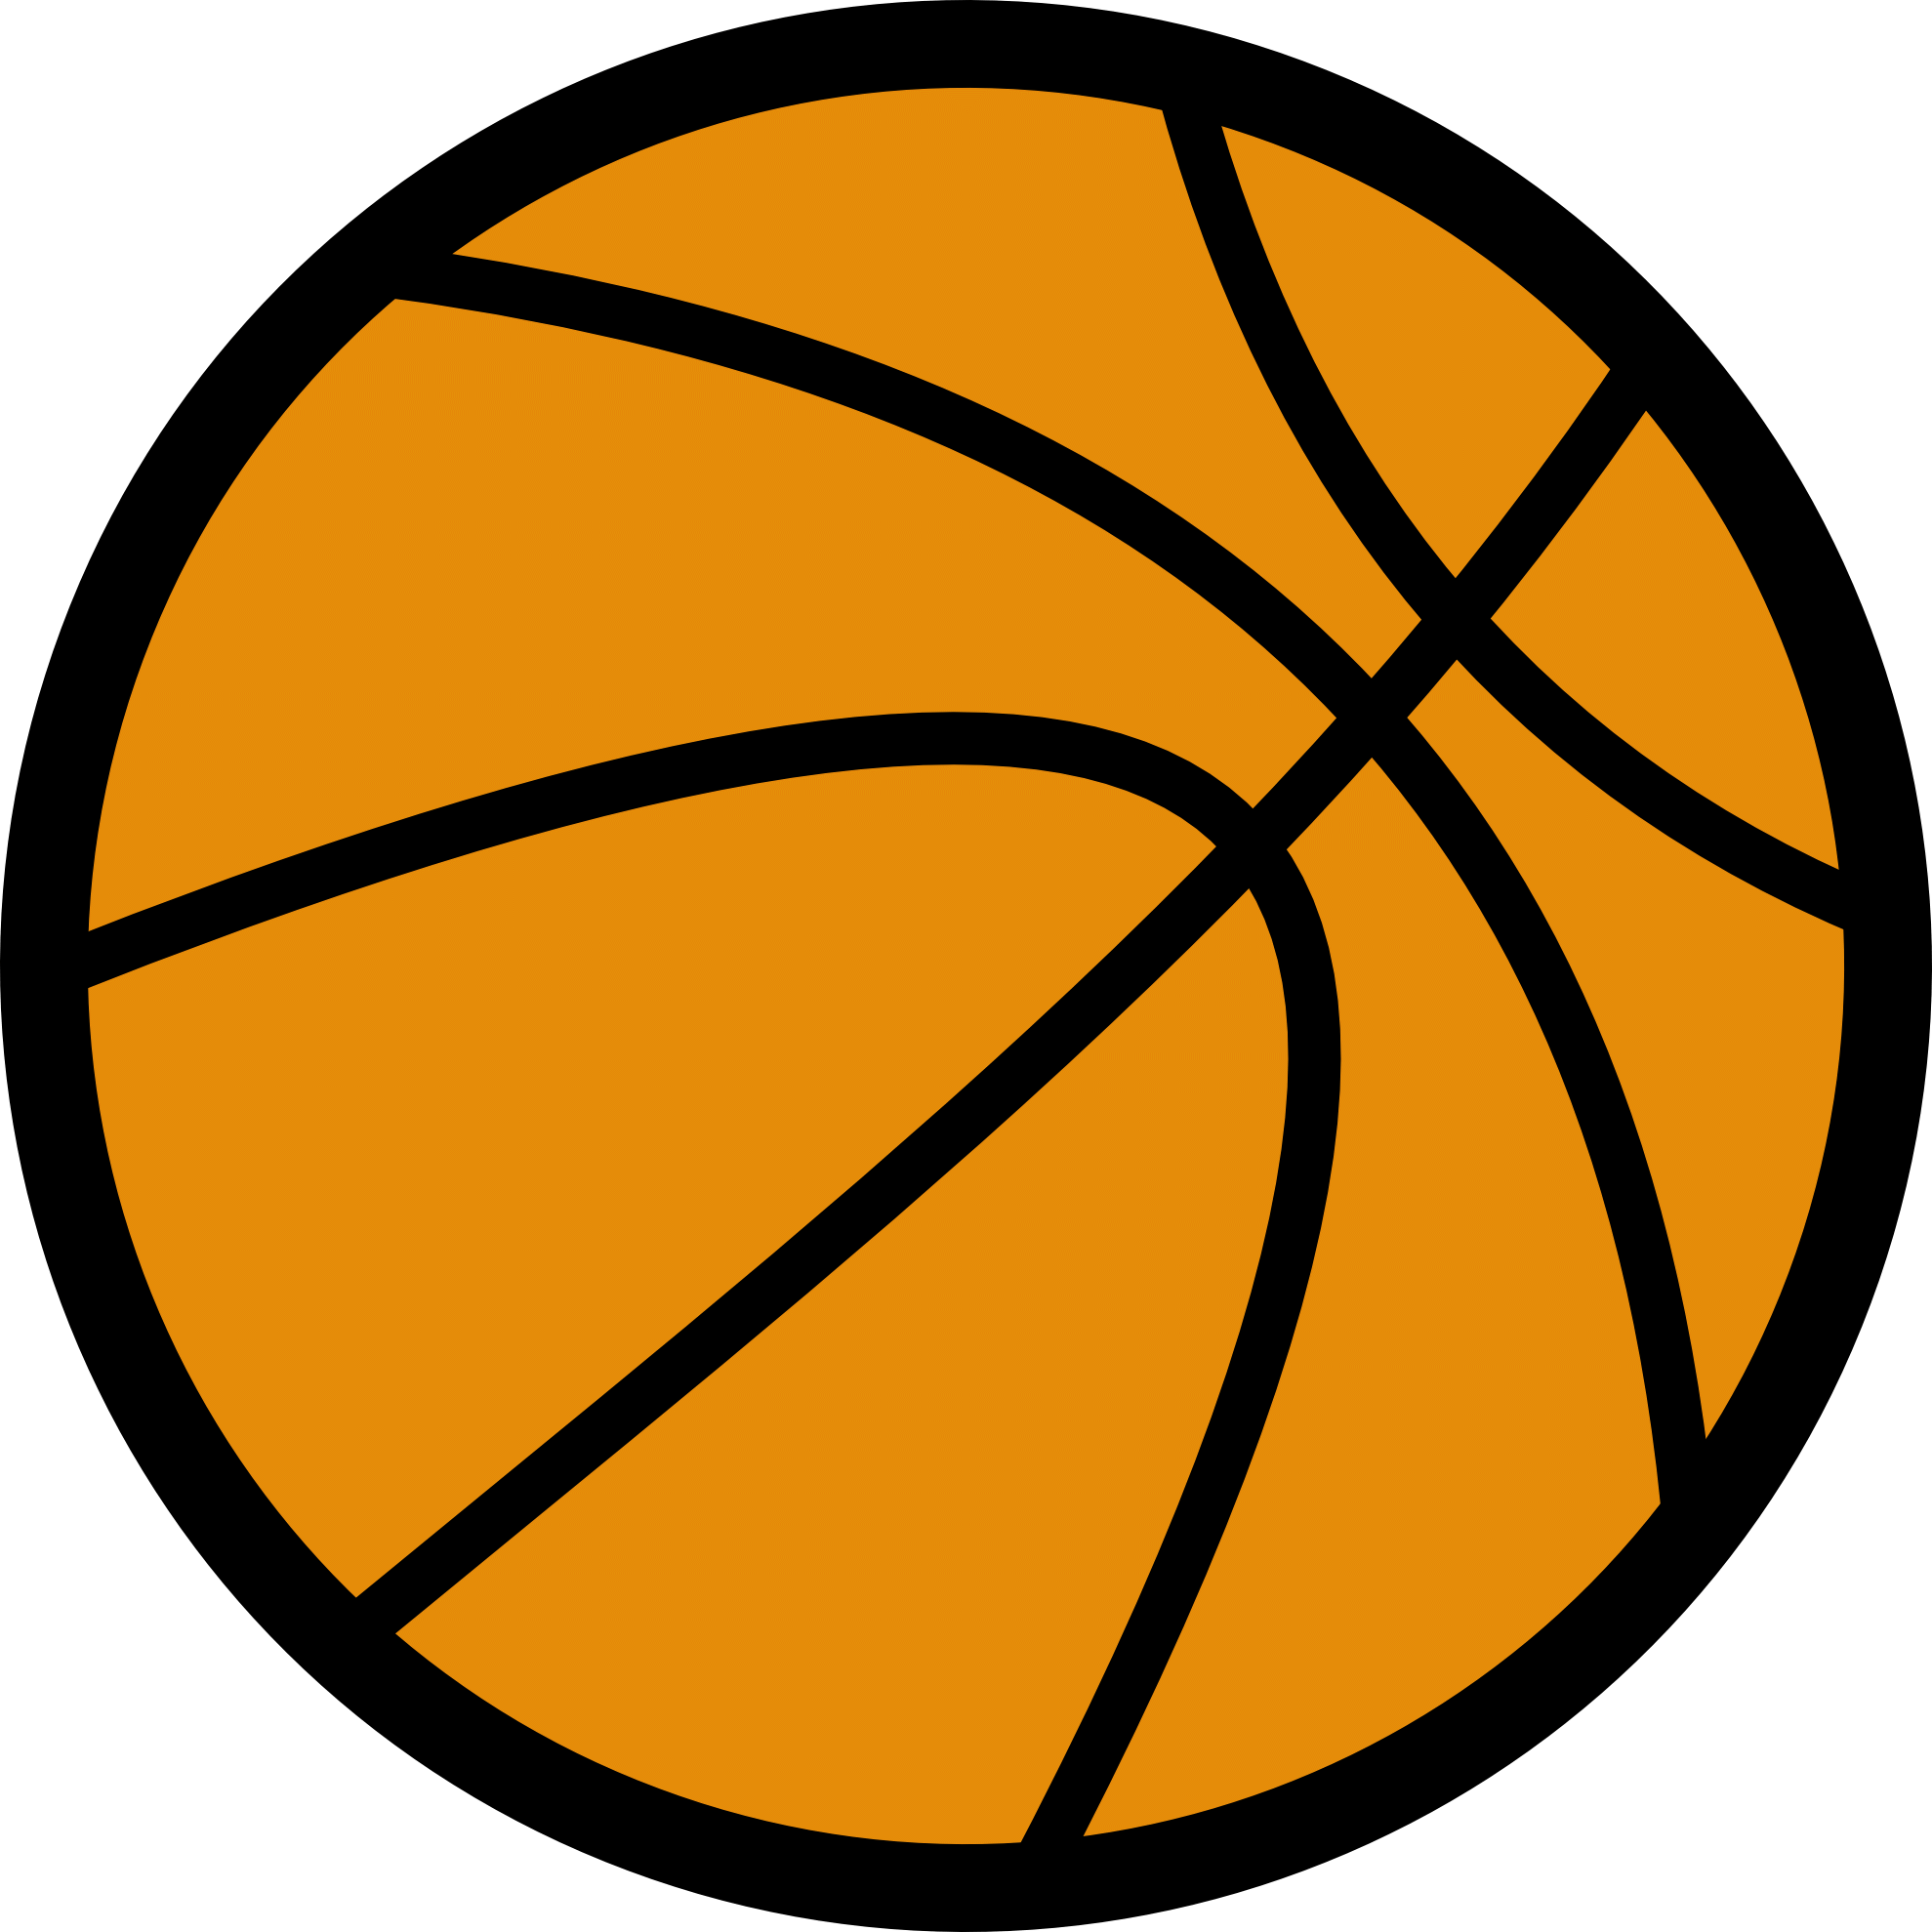 Purple clipart basketball. Logo cliparts zone